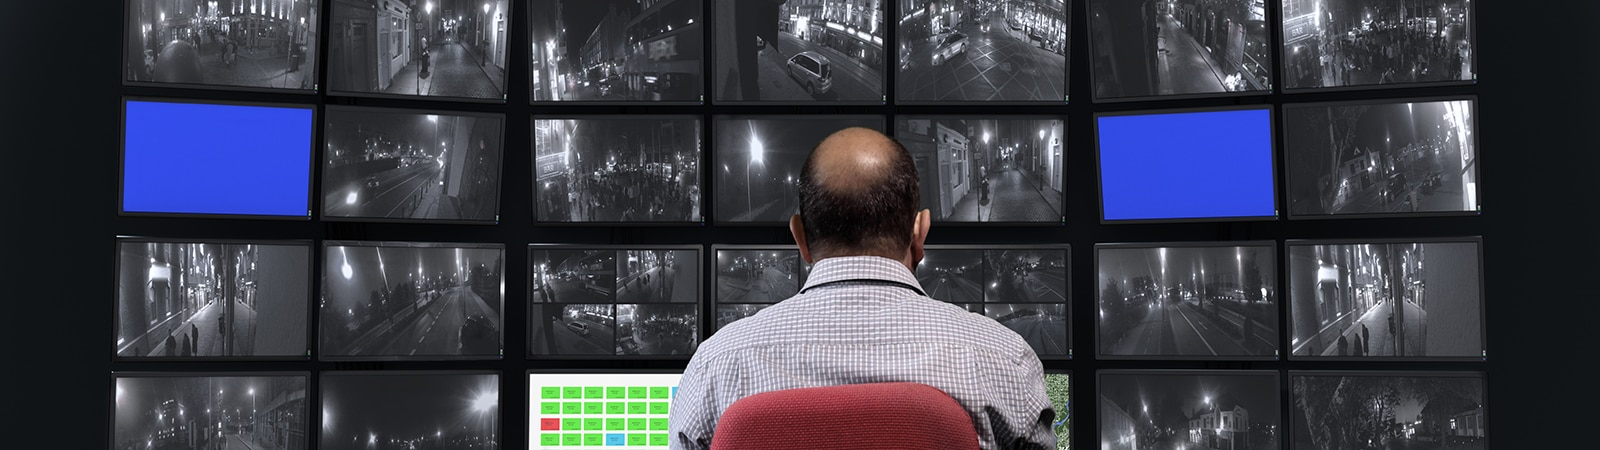 Man viewing video feed from security camera on a multi screen display